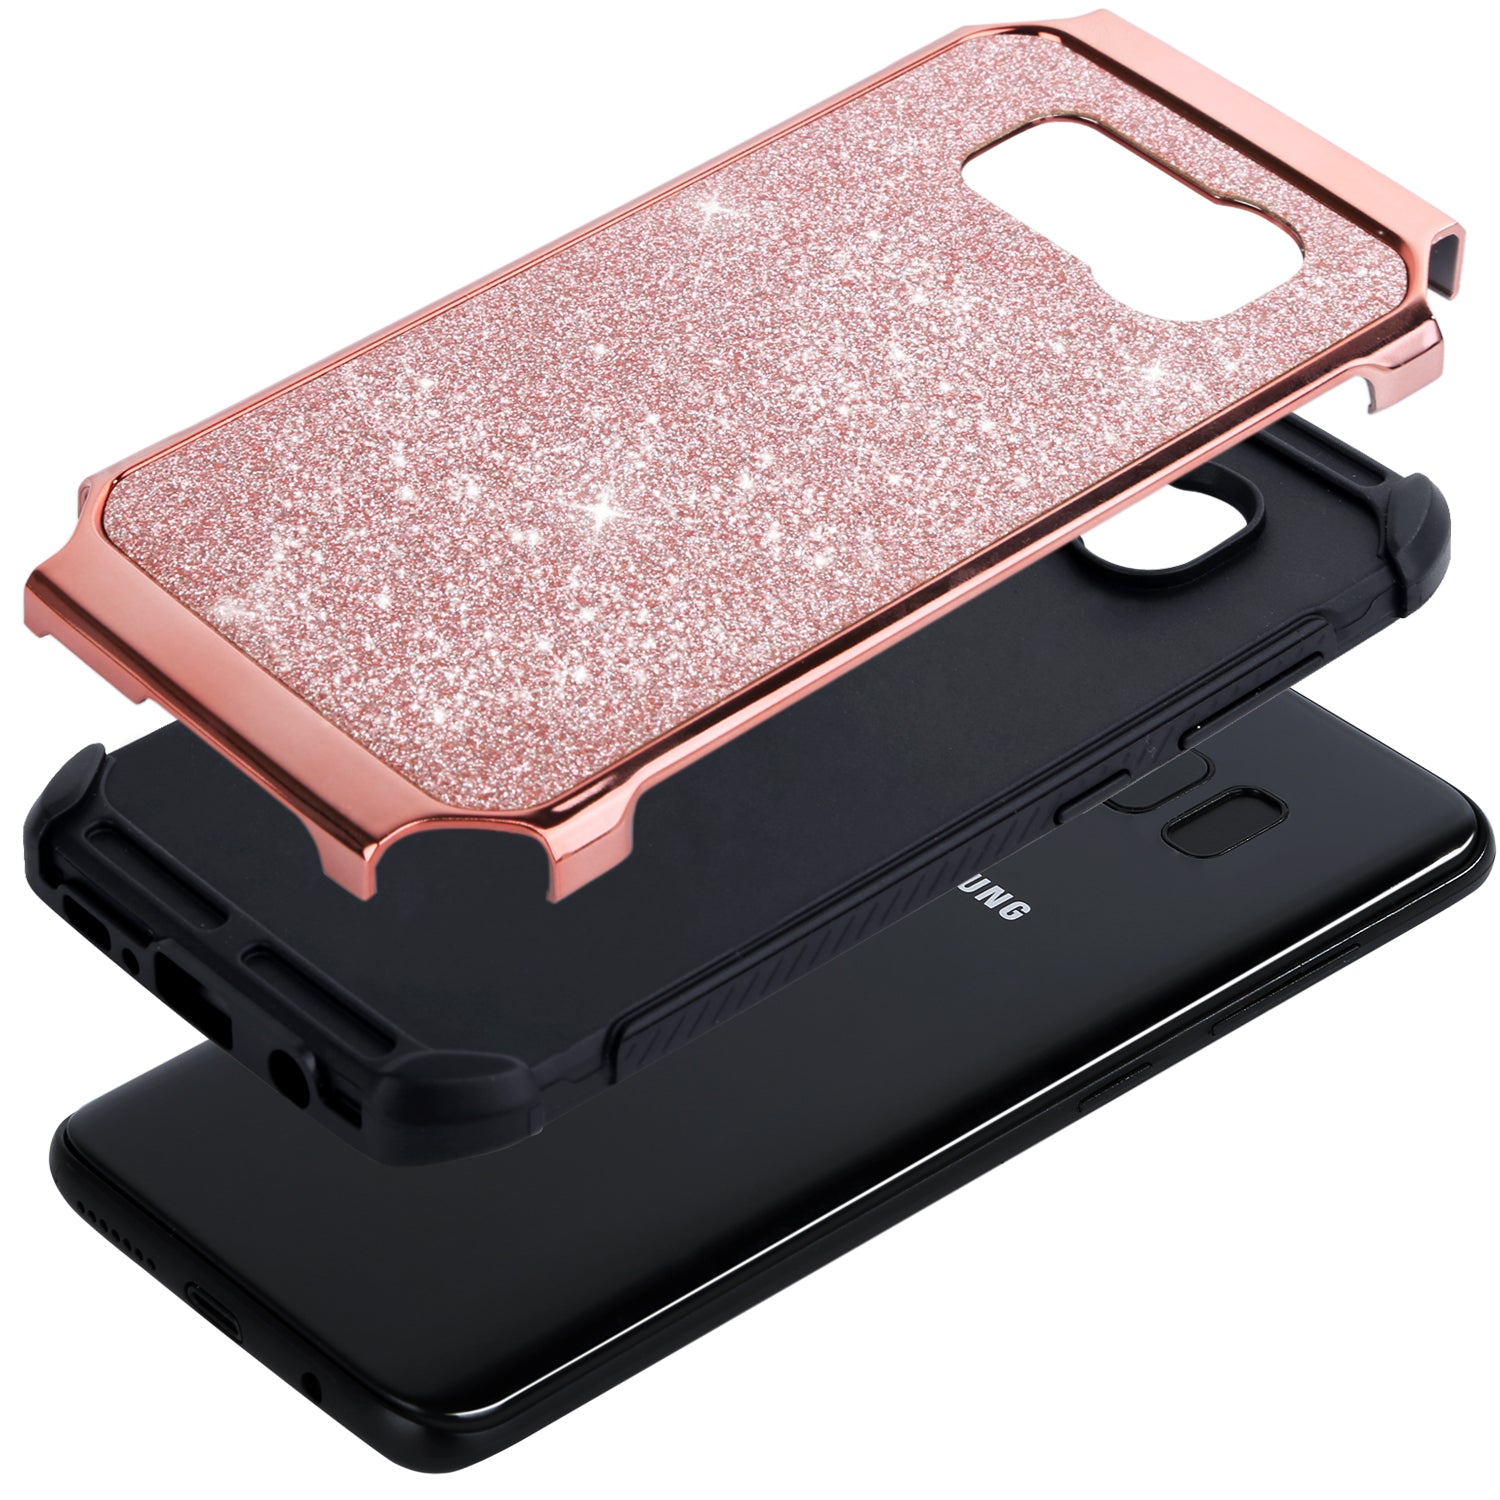 superior quality a8743 0886a BENTOBEN Shockproof Glitter Sparkly Bling 2 in 1 Hybrid Hard PC Shiny Faux  Leather Chrome Protective Case for Samsung Galaxy S8 2017 (5.8 Inch), Rose  ...